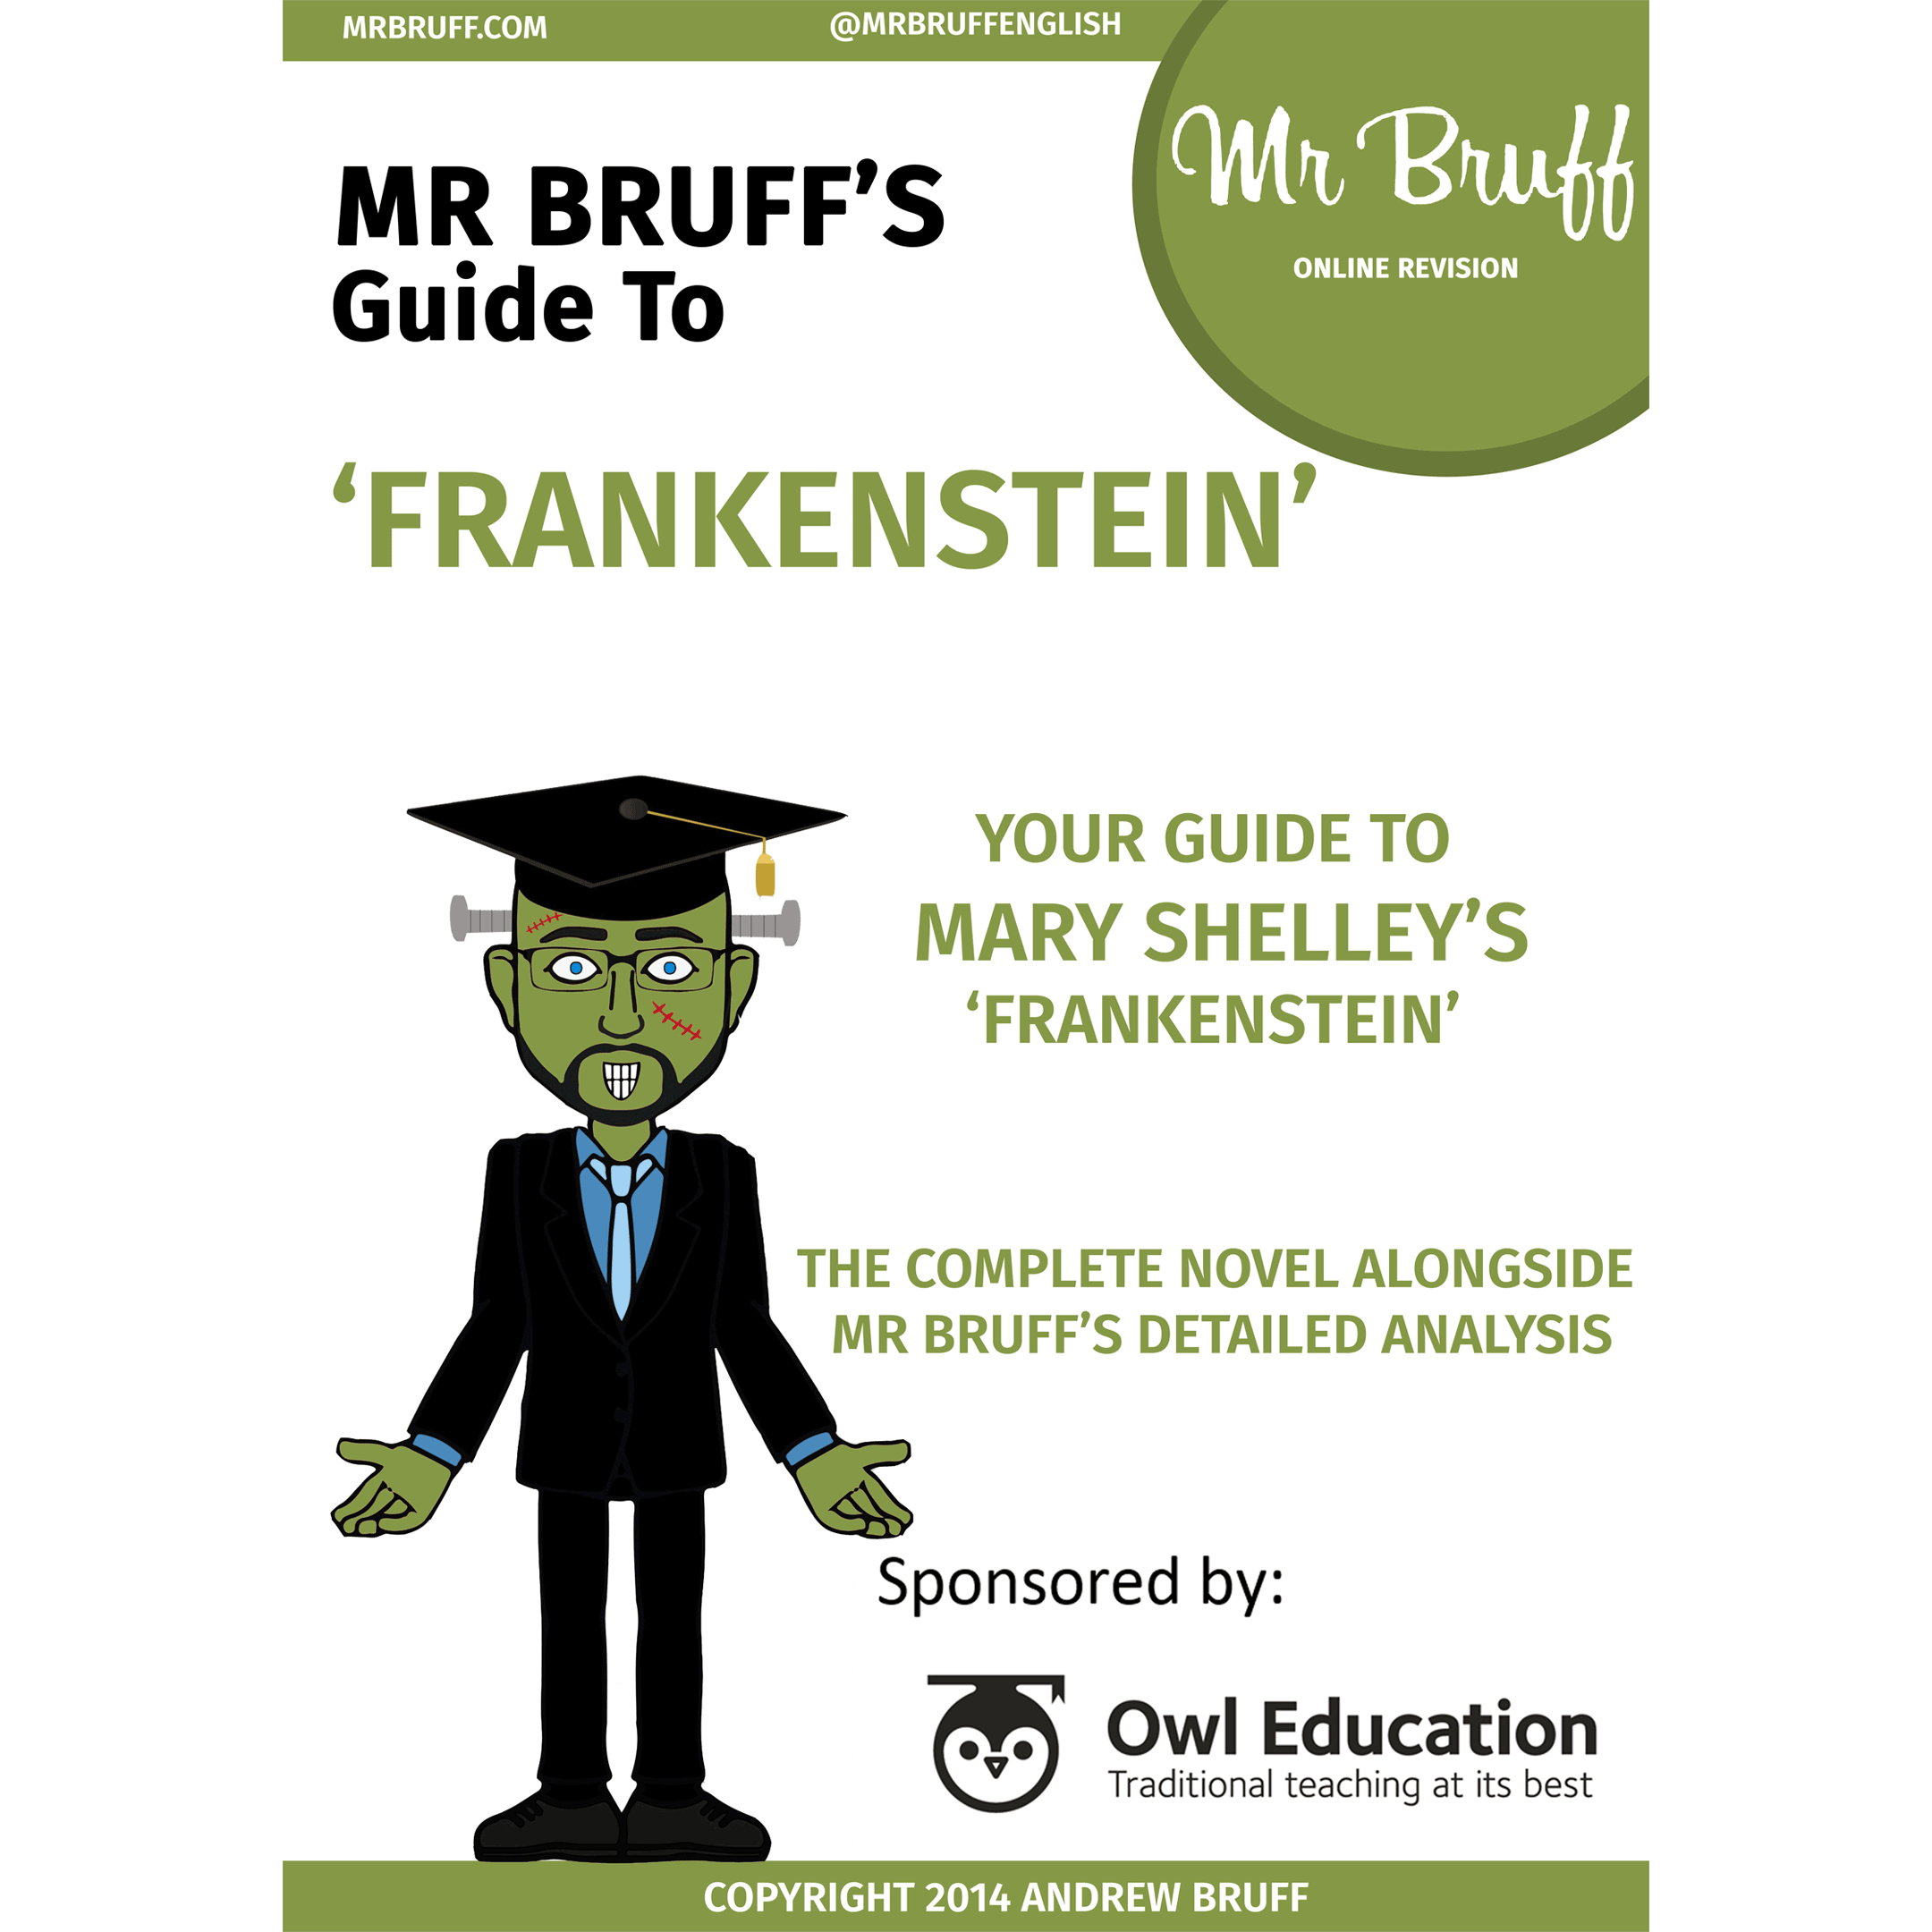 frankenstein coursework questions Edexcel a-level english literature: frankenstein themes - free download as word doc (doc), pdf file (pdf), text file (txt) or read online for free a-level english.